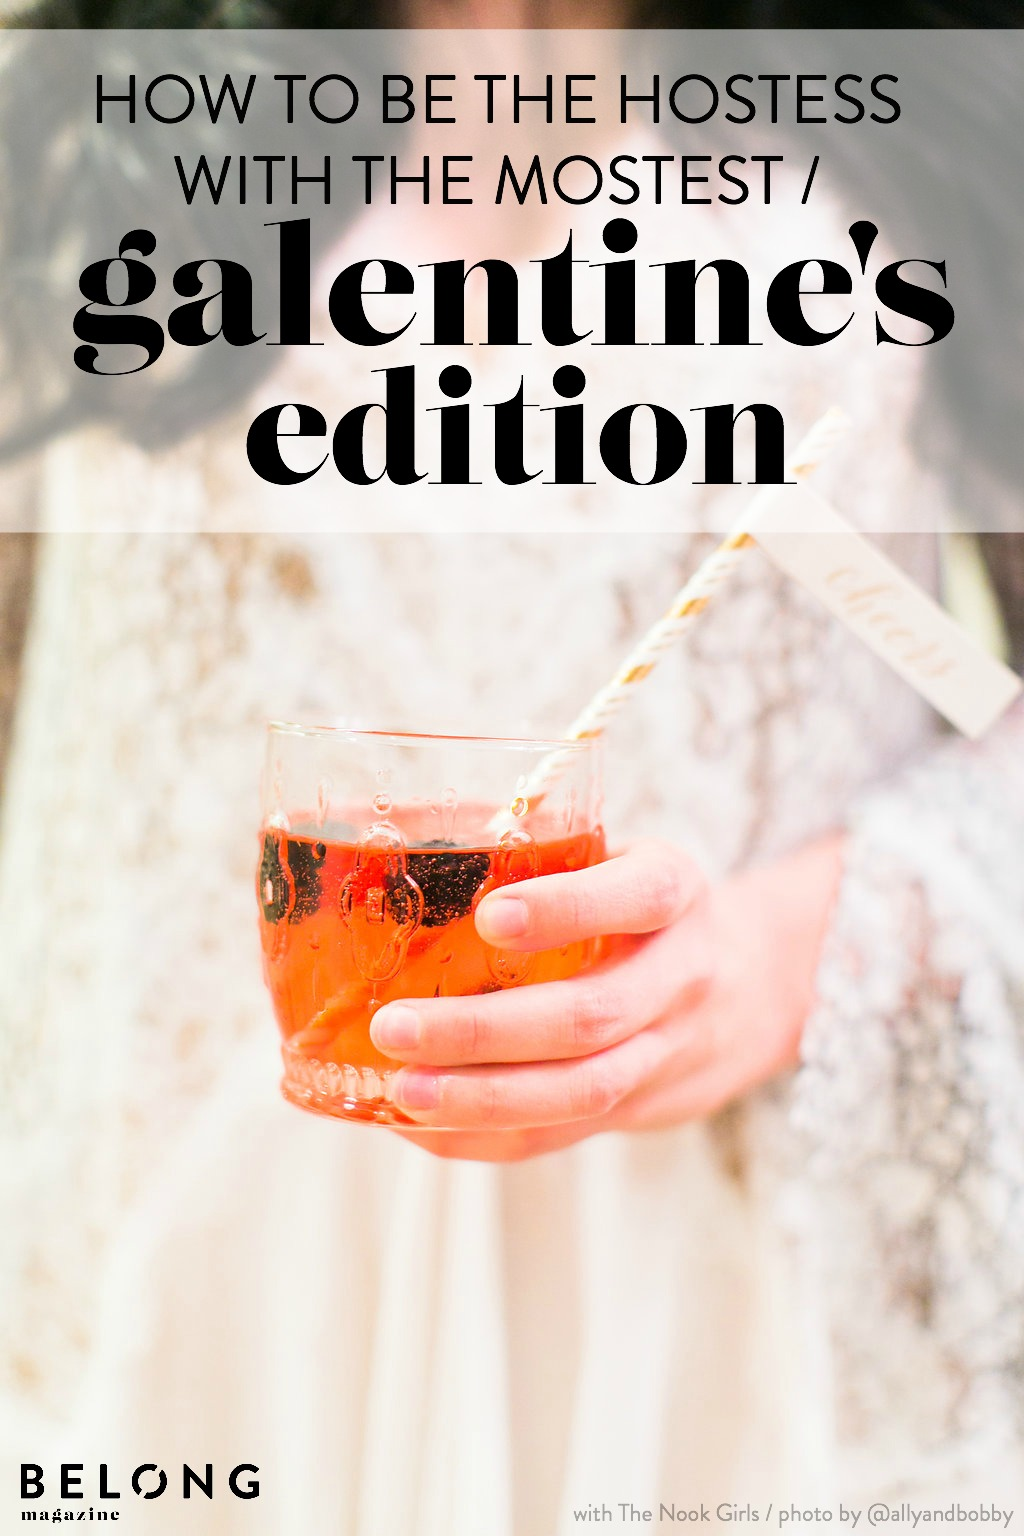 how to be the hostess with the mostest - galentine's day edition with the nook girls - valentine's day party for the girls